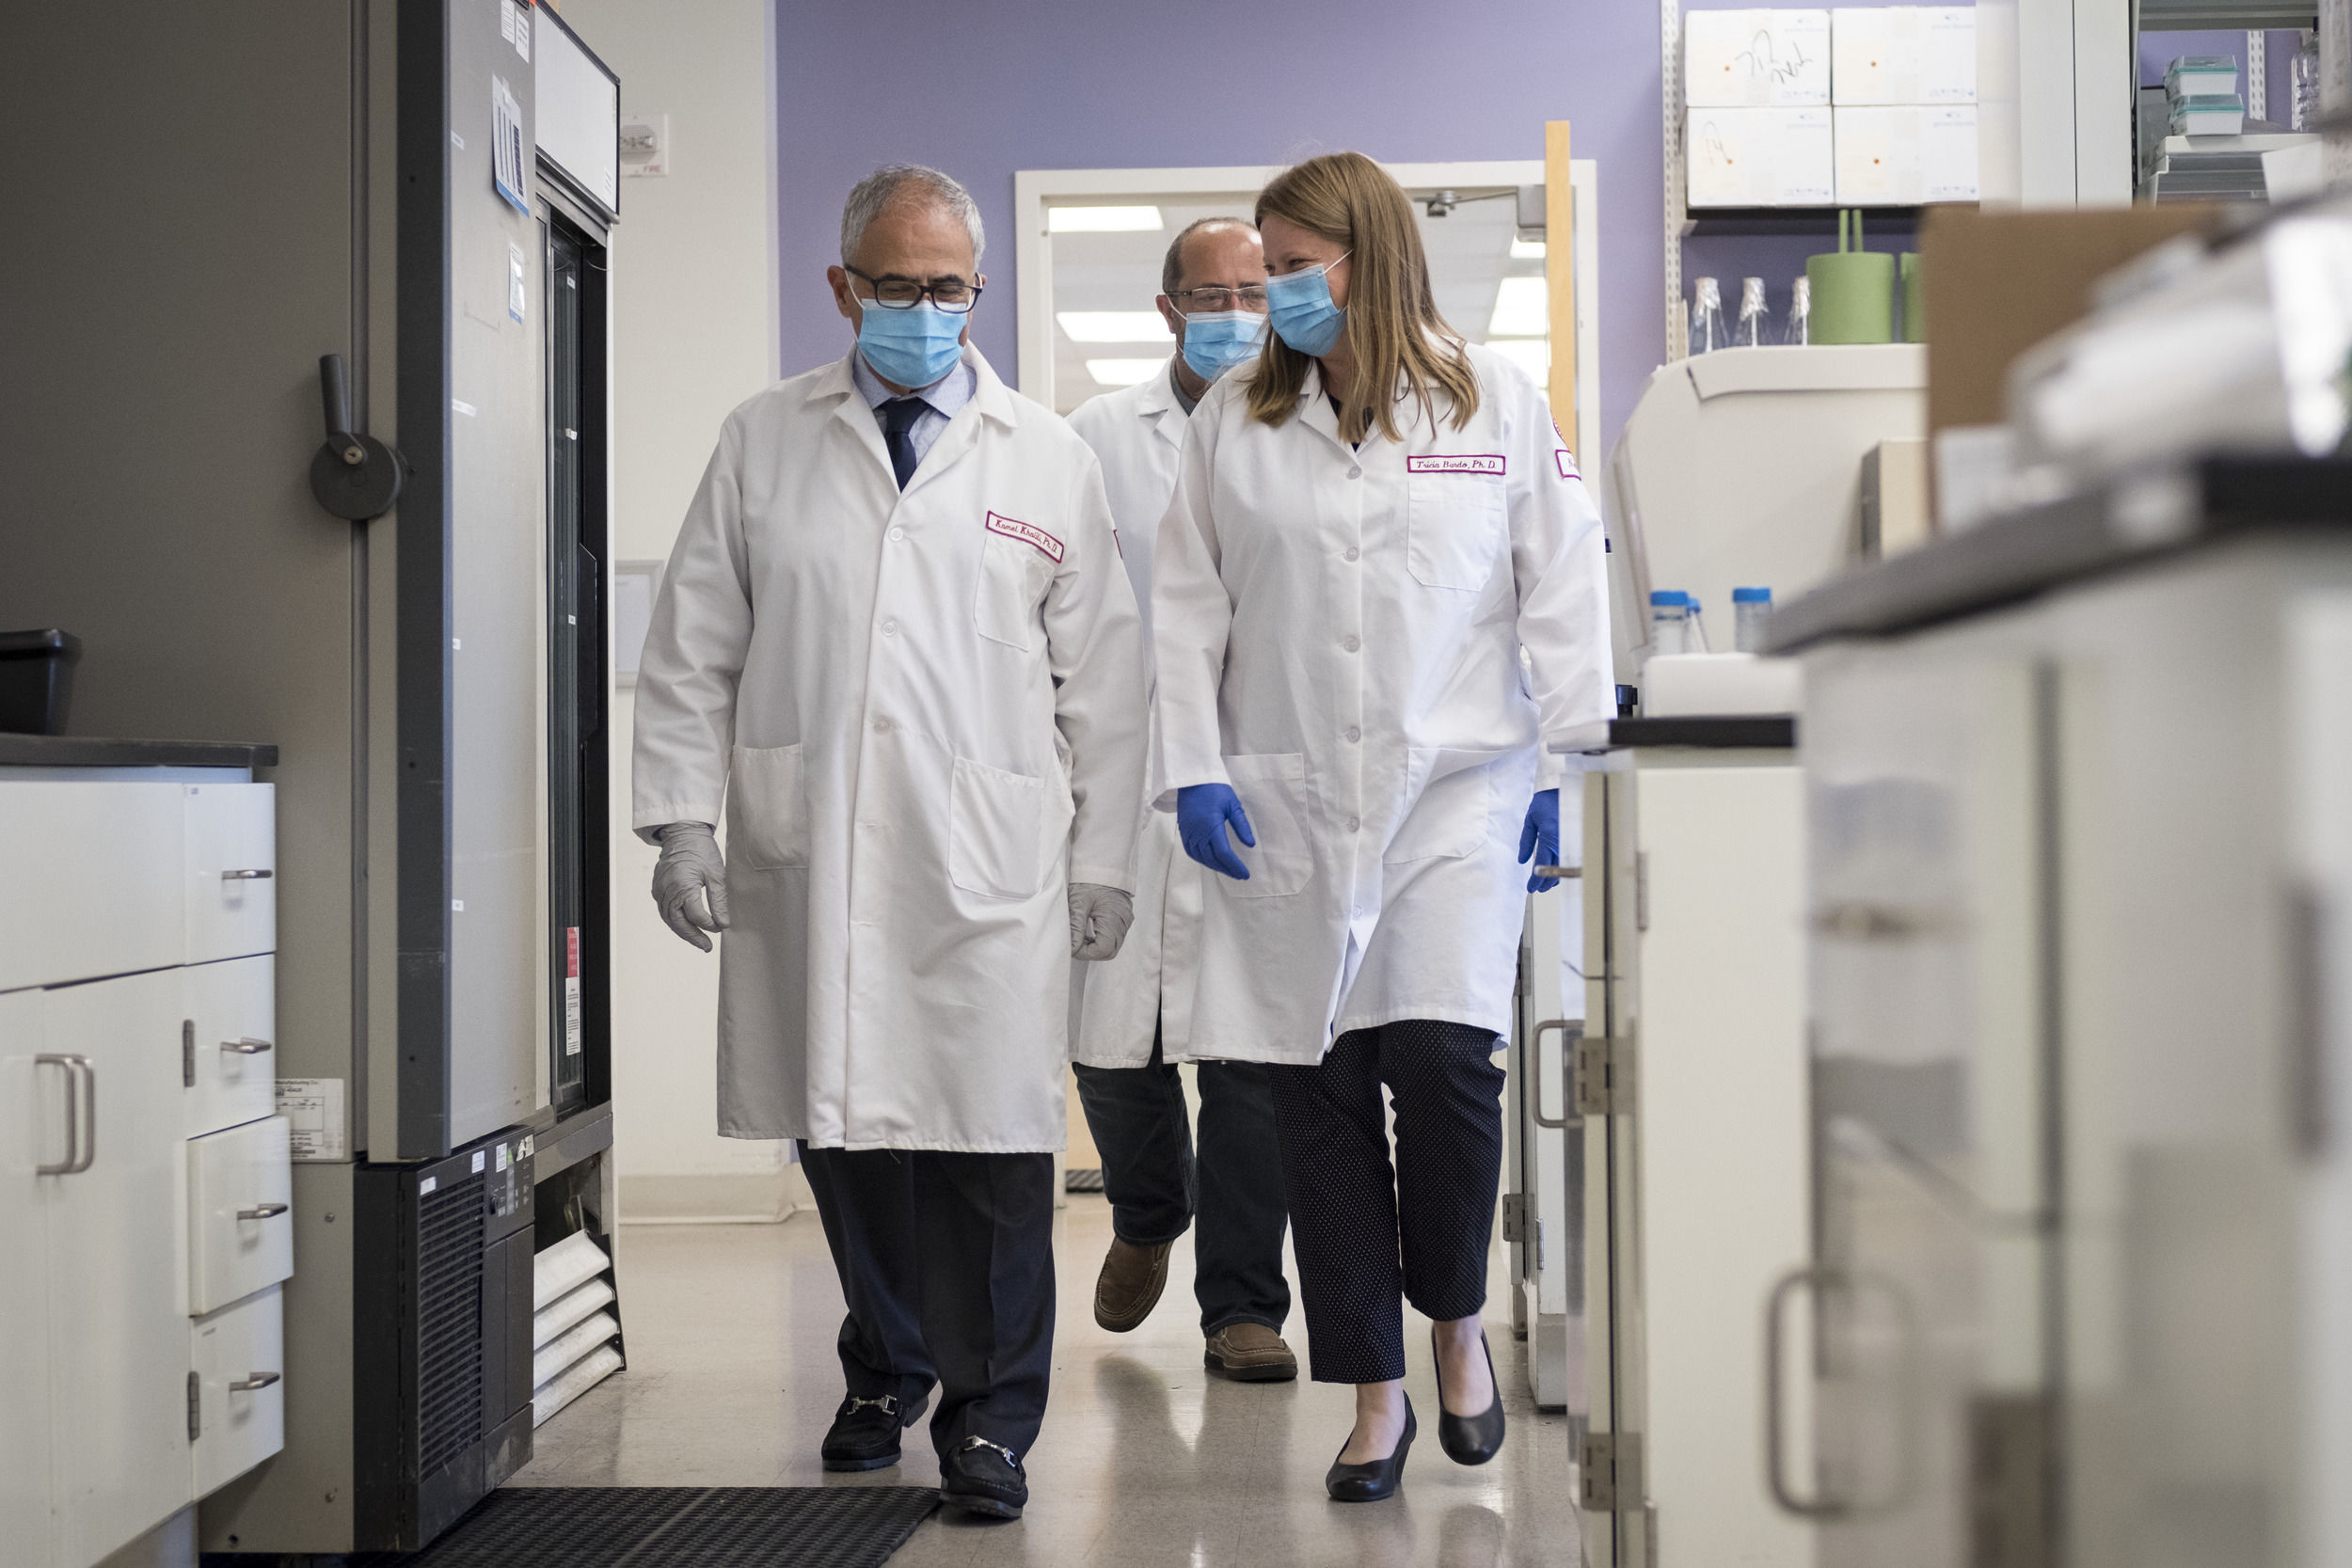 Three people wearing white lab coats and masks walk through the HIV research lab